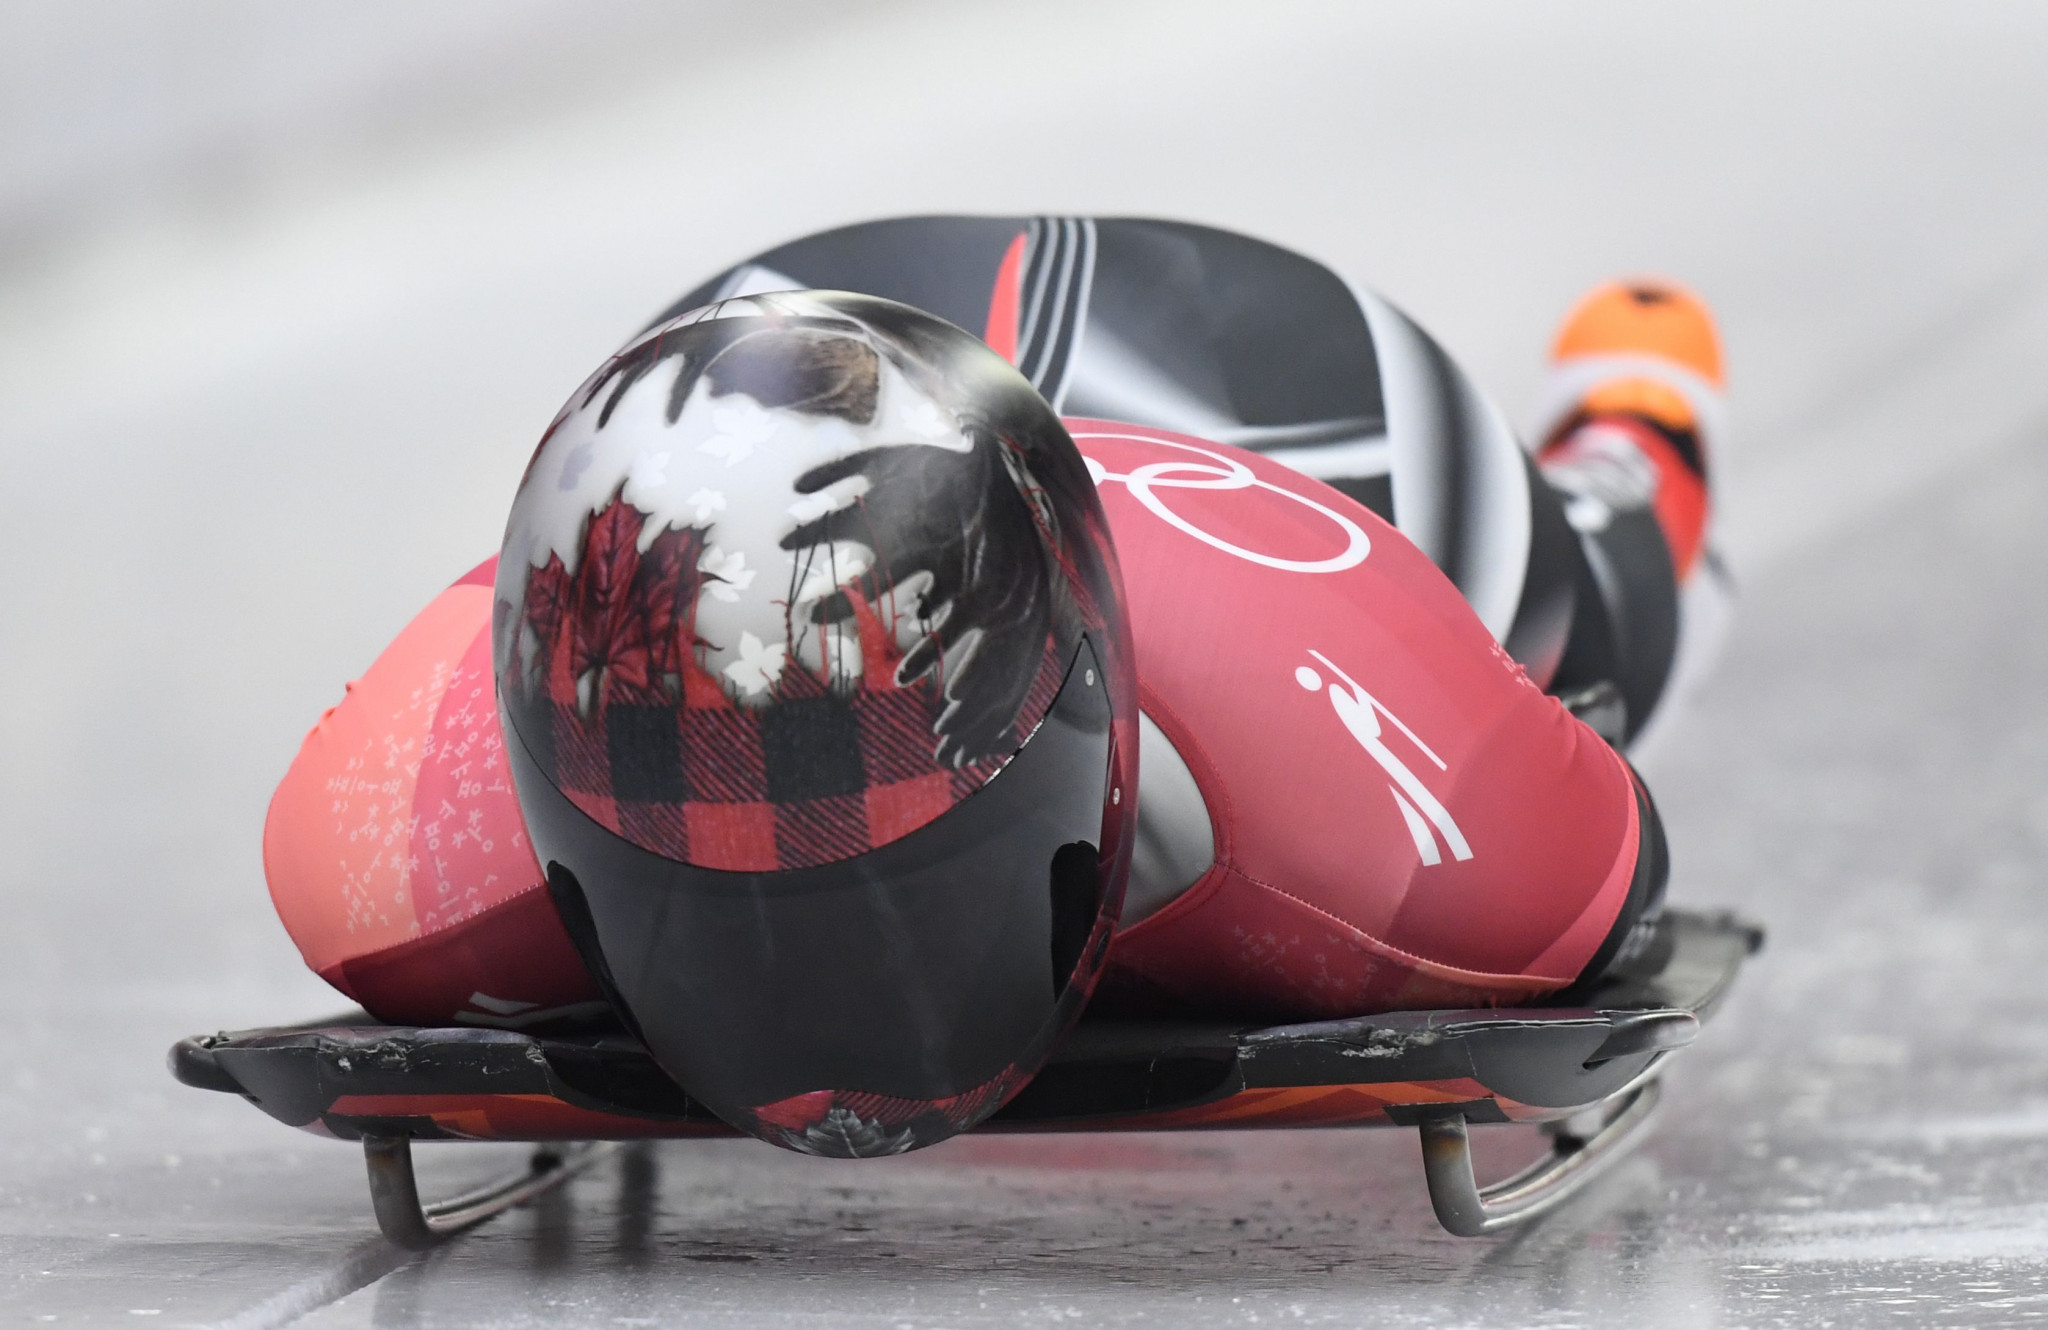 Alpensia Sliding Centre, which was used at Pyeongchang 2018, will host skeleton races at the Gangwon 2024 Youth Olympic Games ©Getty Images